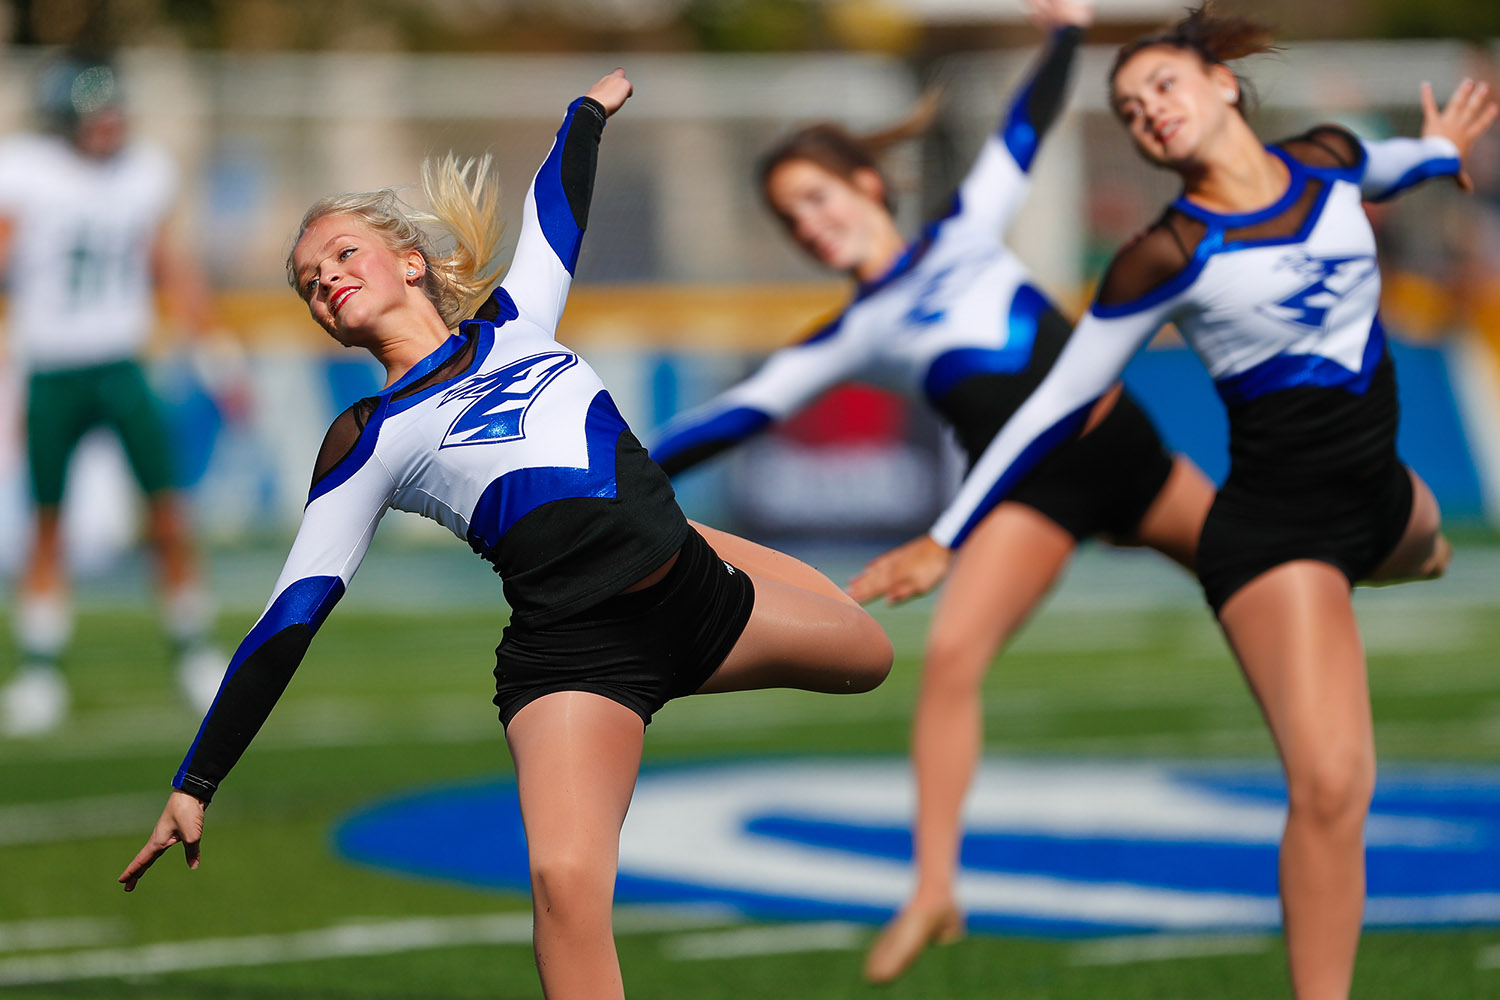 Allison Bauer was a member of the UNK Sapphires dance team for four years, serving as captain in 2018-19.